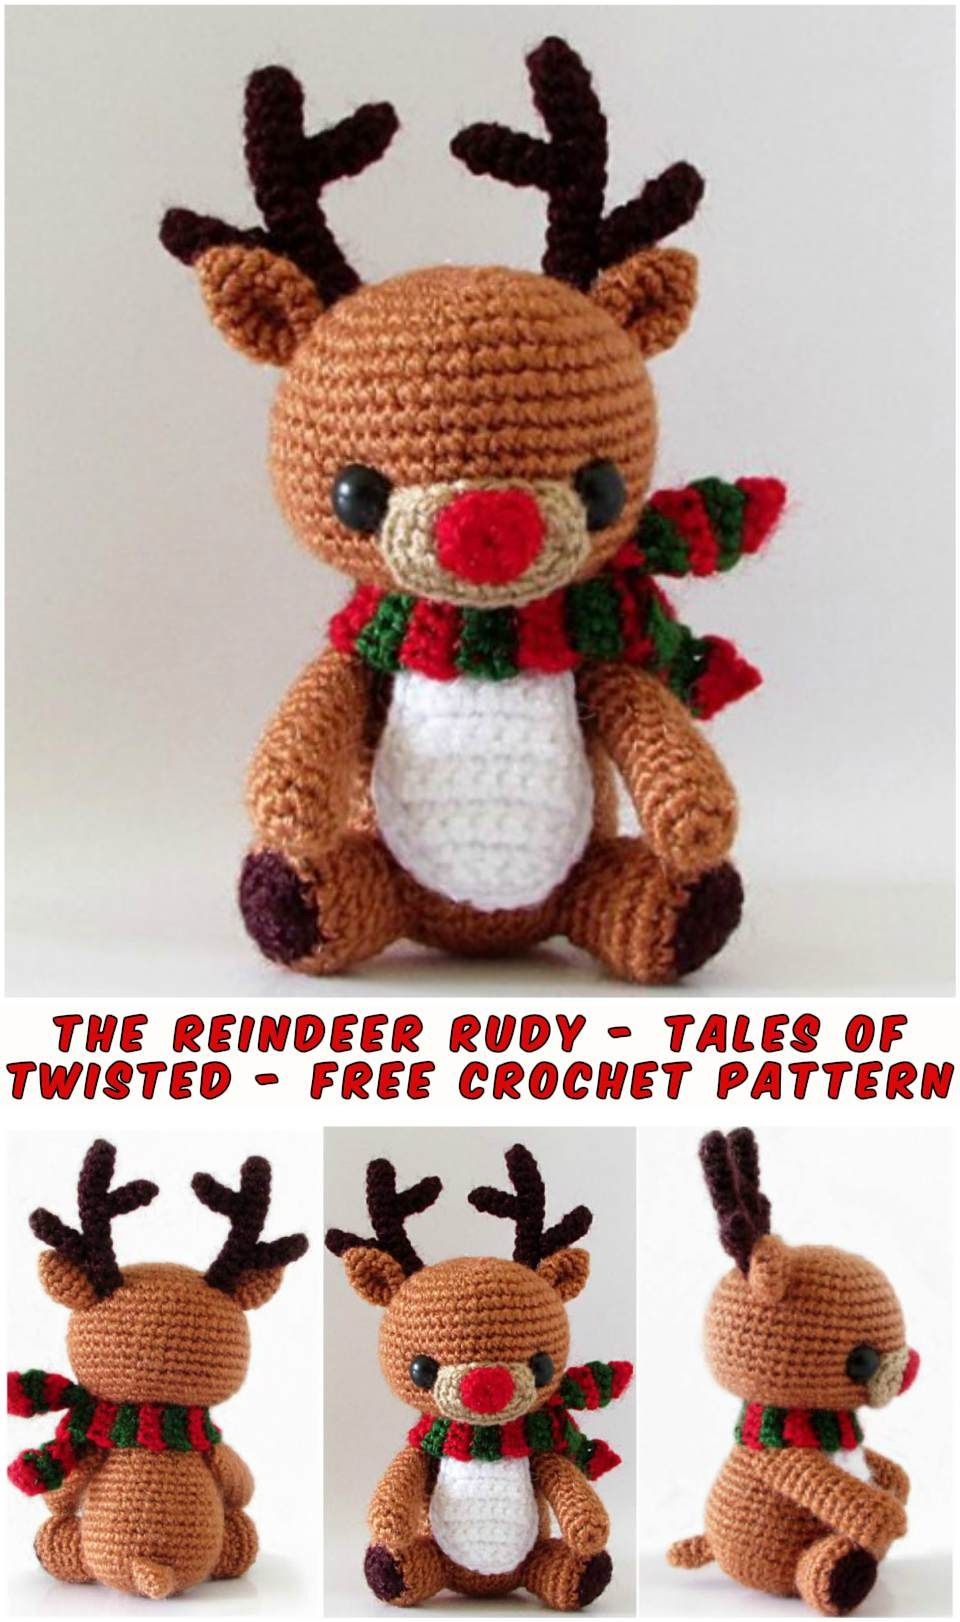 The reindeer rudy tales of twisted free crochet pattern the reindeer rudy tales of twisted free crochet pattern bankloansurffo Choice Image